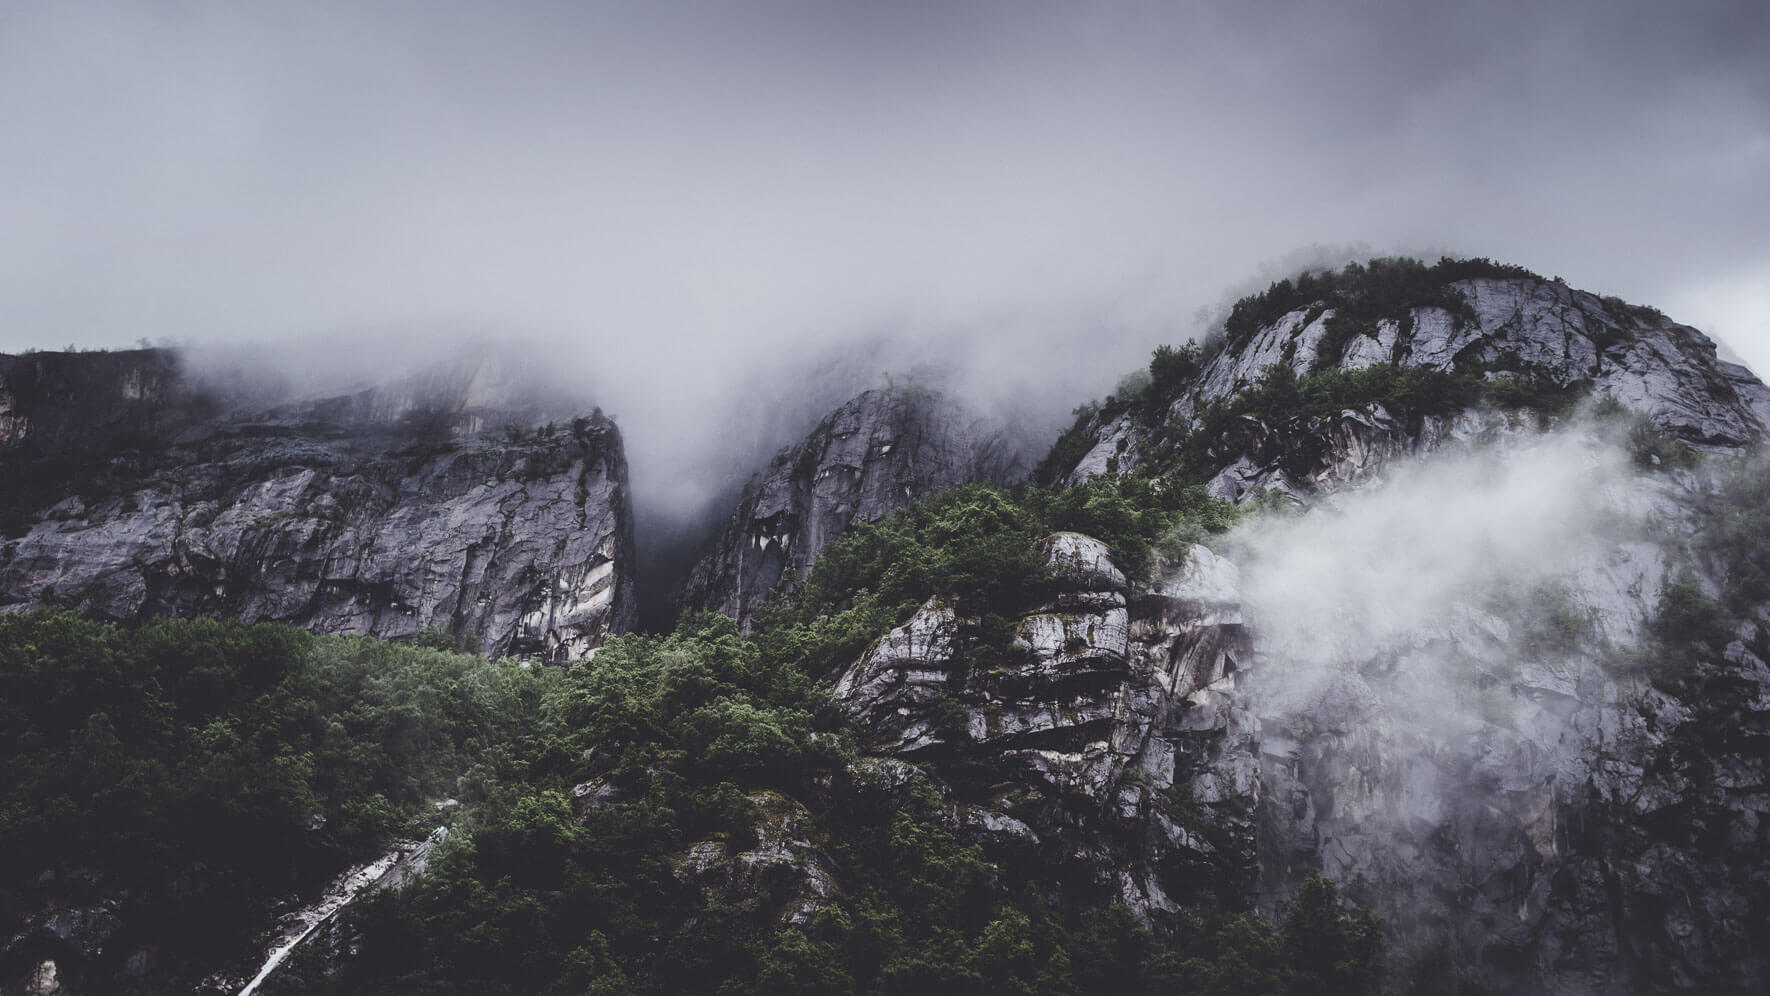 Atmospheric landscape photography of the Nordic countries by Jan Erik Waider